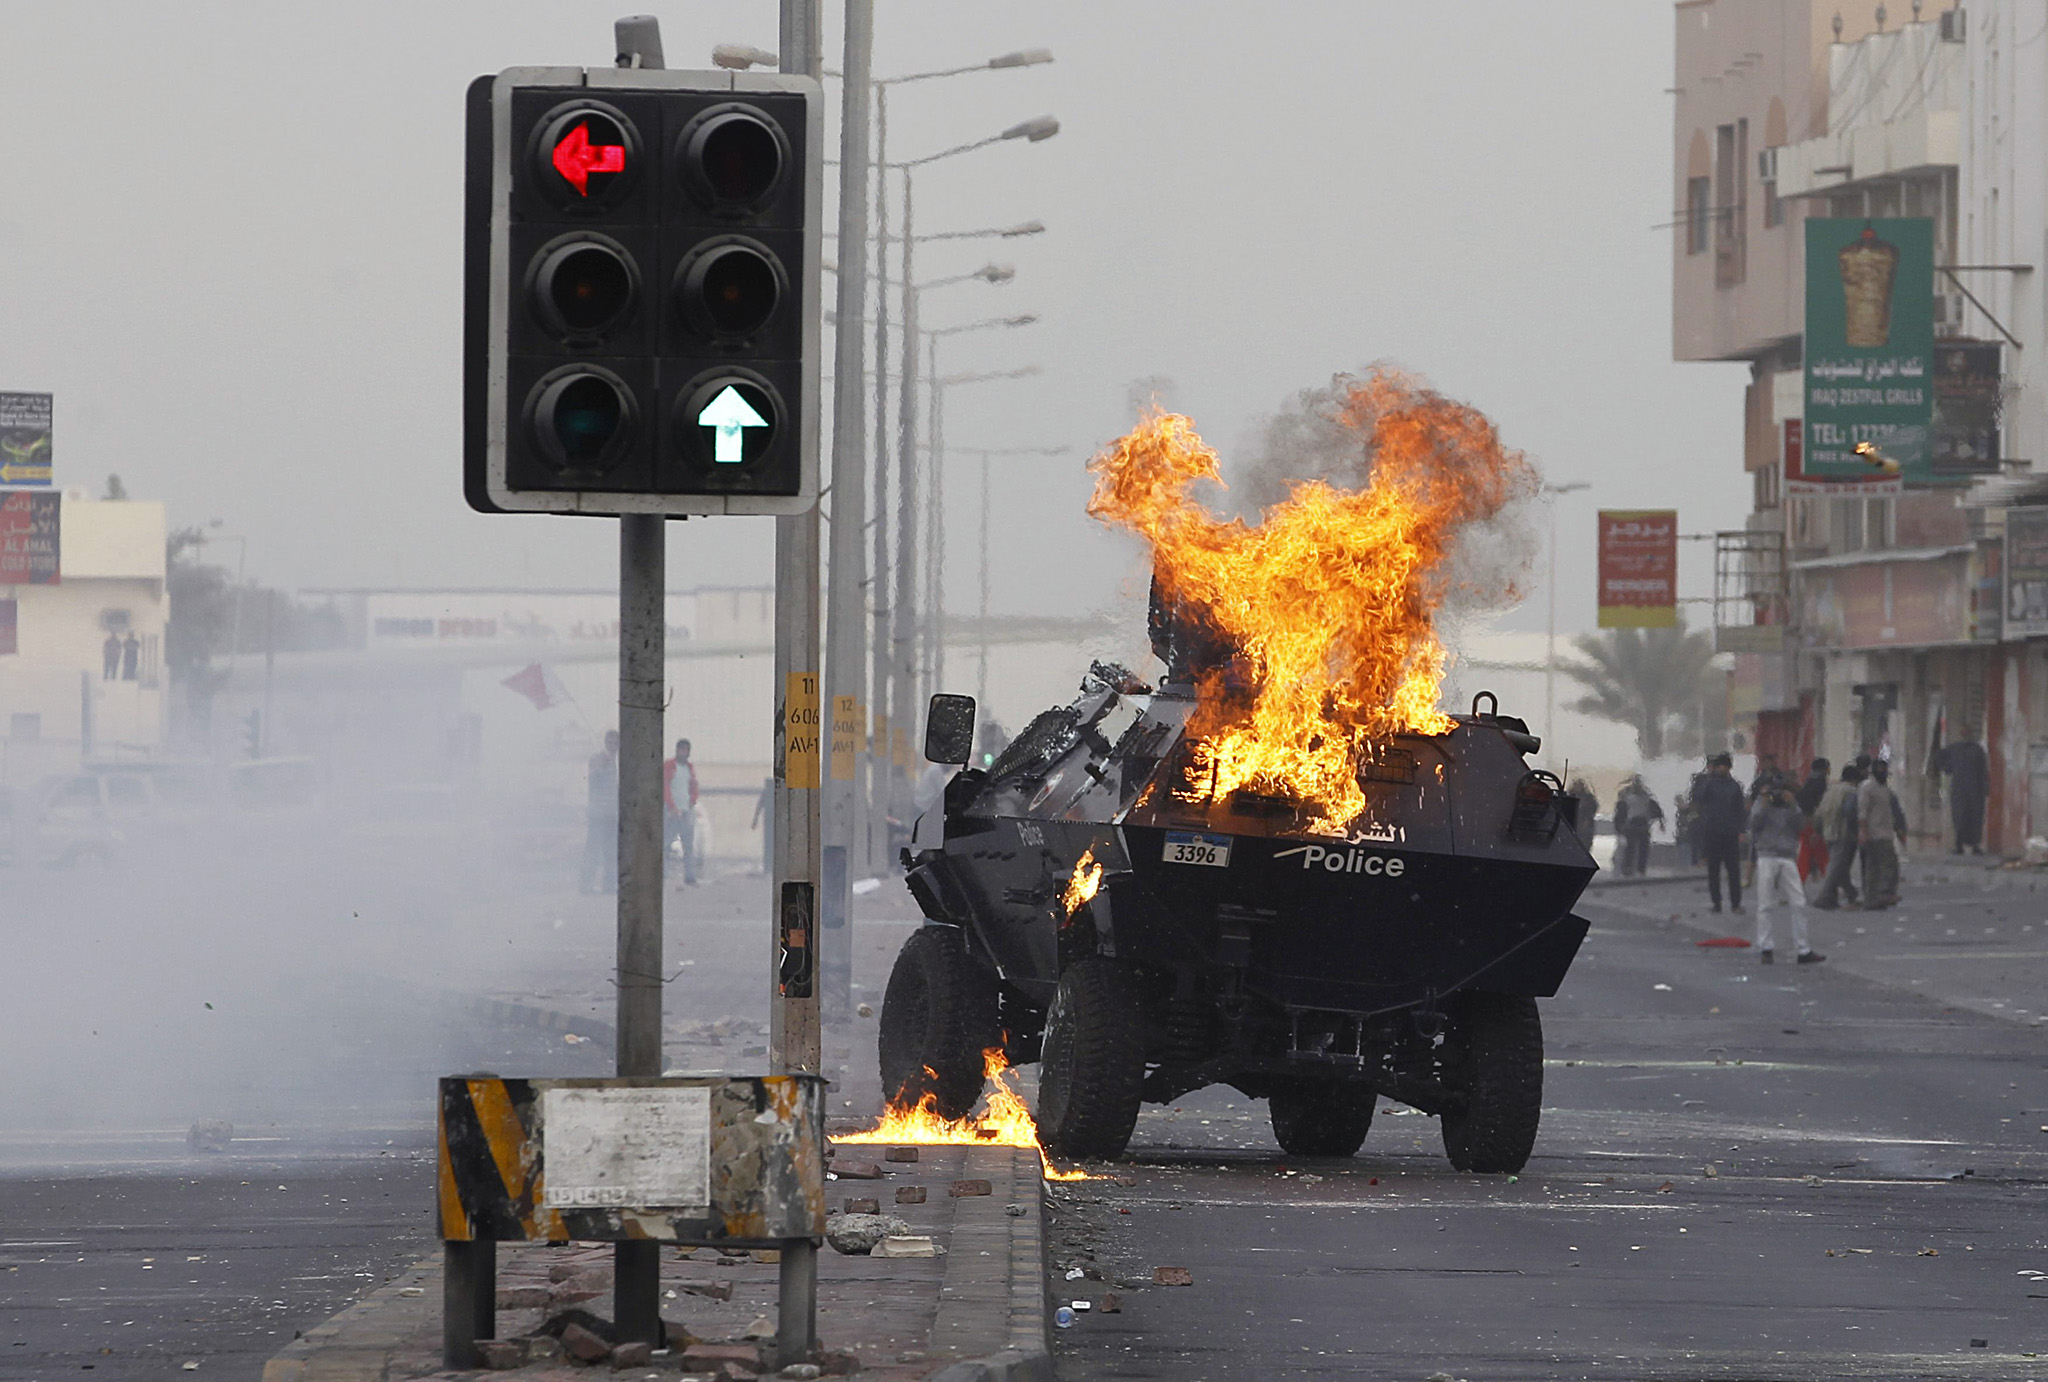 A Molotov cocktail which was thrown by protesters explodes on a riot police armoured personnel carrier at a highway in the village of Sitra, south of Manama, January 9, 2015. Several demonstrations calling for the release of Sheikh Ali Salman, head of the al-Wefaq Islamic Society, and resulting in clashes with riot police, were held across the country, local media reported. Ali Salman was arrested on December 28, 2014. Salman's lawyer Abdulla al-Shamlawi told Reuters he had been formally charged by the public prosecutor with inciting a change of government by force, inciting hatred of a segment of society, inciting others to break the law and publicly insulting the Interior Ministry. REUTERS/Hamad I Mohammed (BAHRAIN - Tags: POLITICS CRIME LAW)